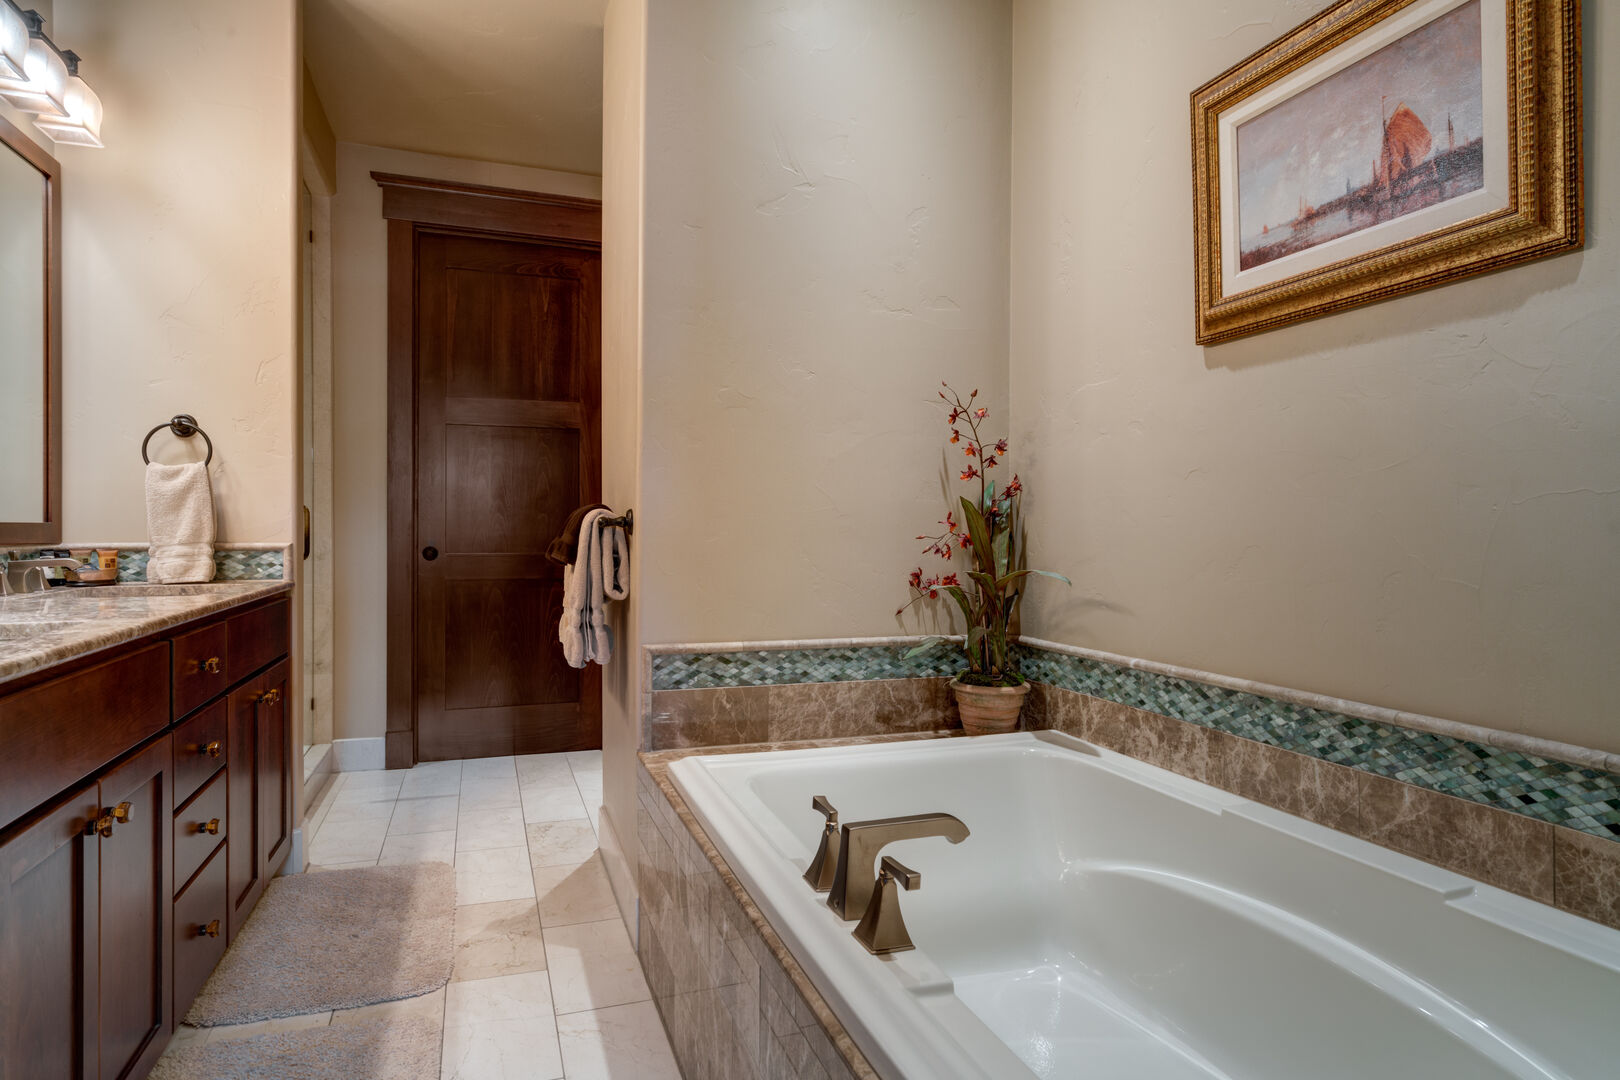 Master Bathroom in our Steamboat Springs Vacation Condo Features a Jacuzzi Tub